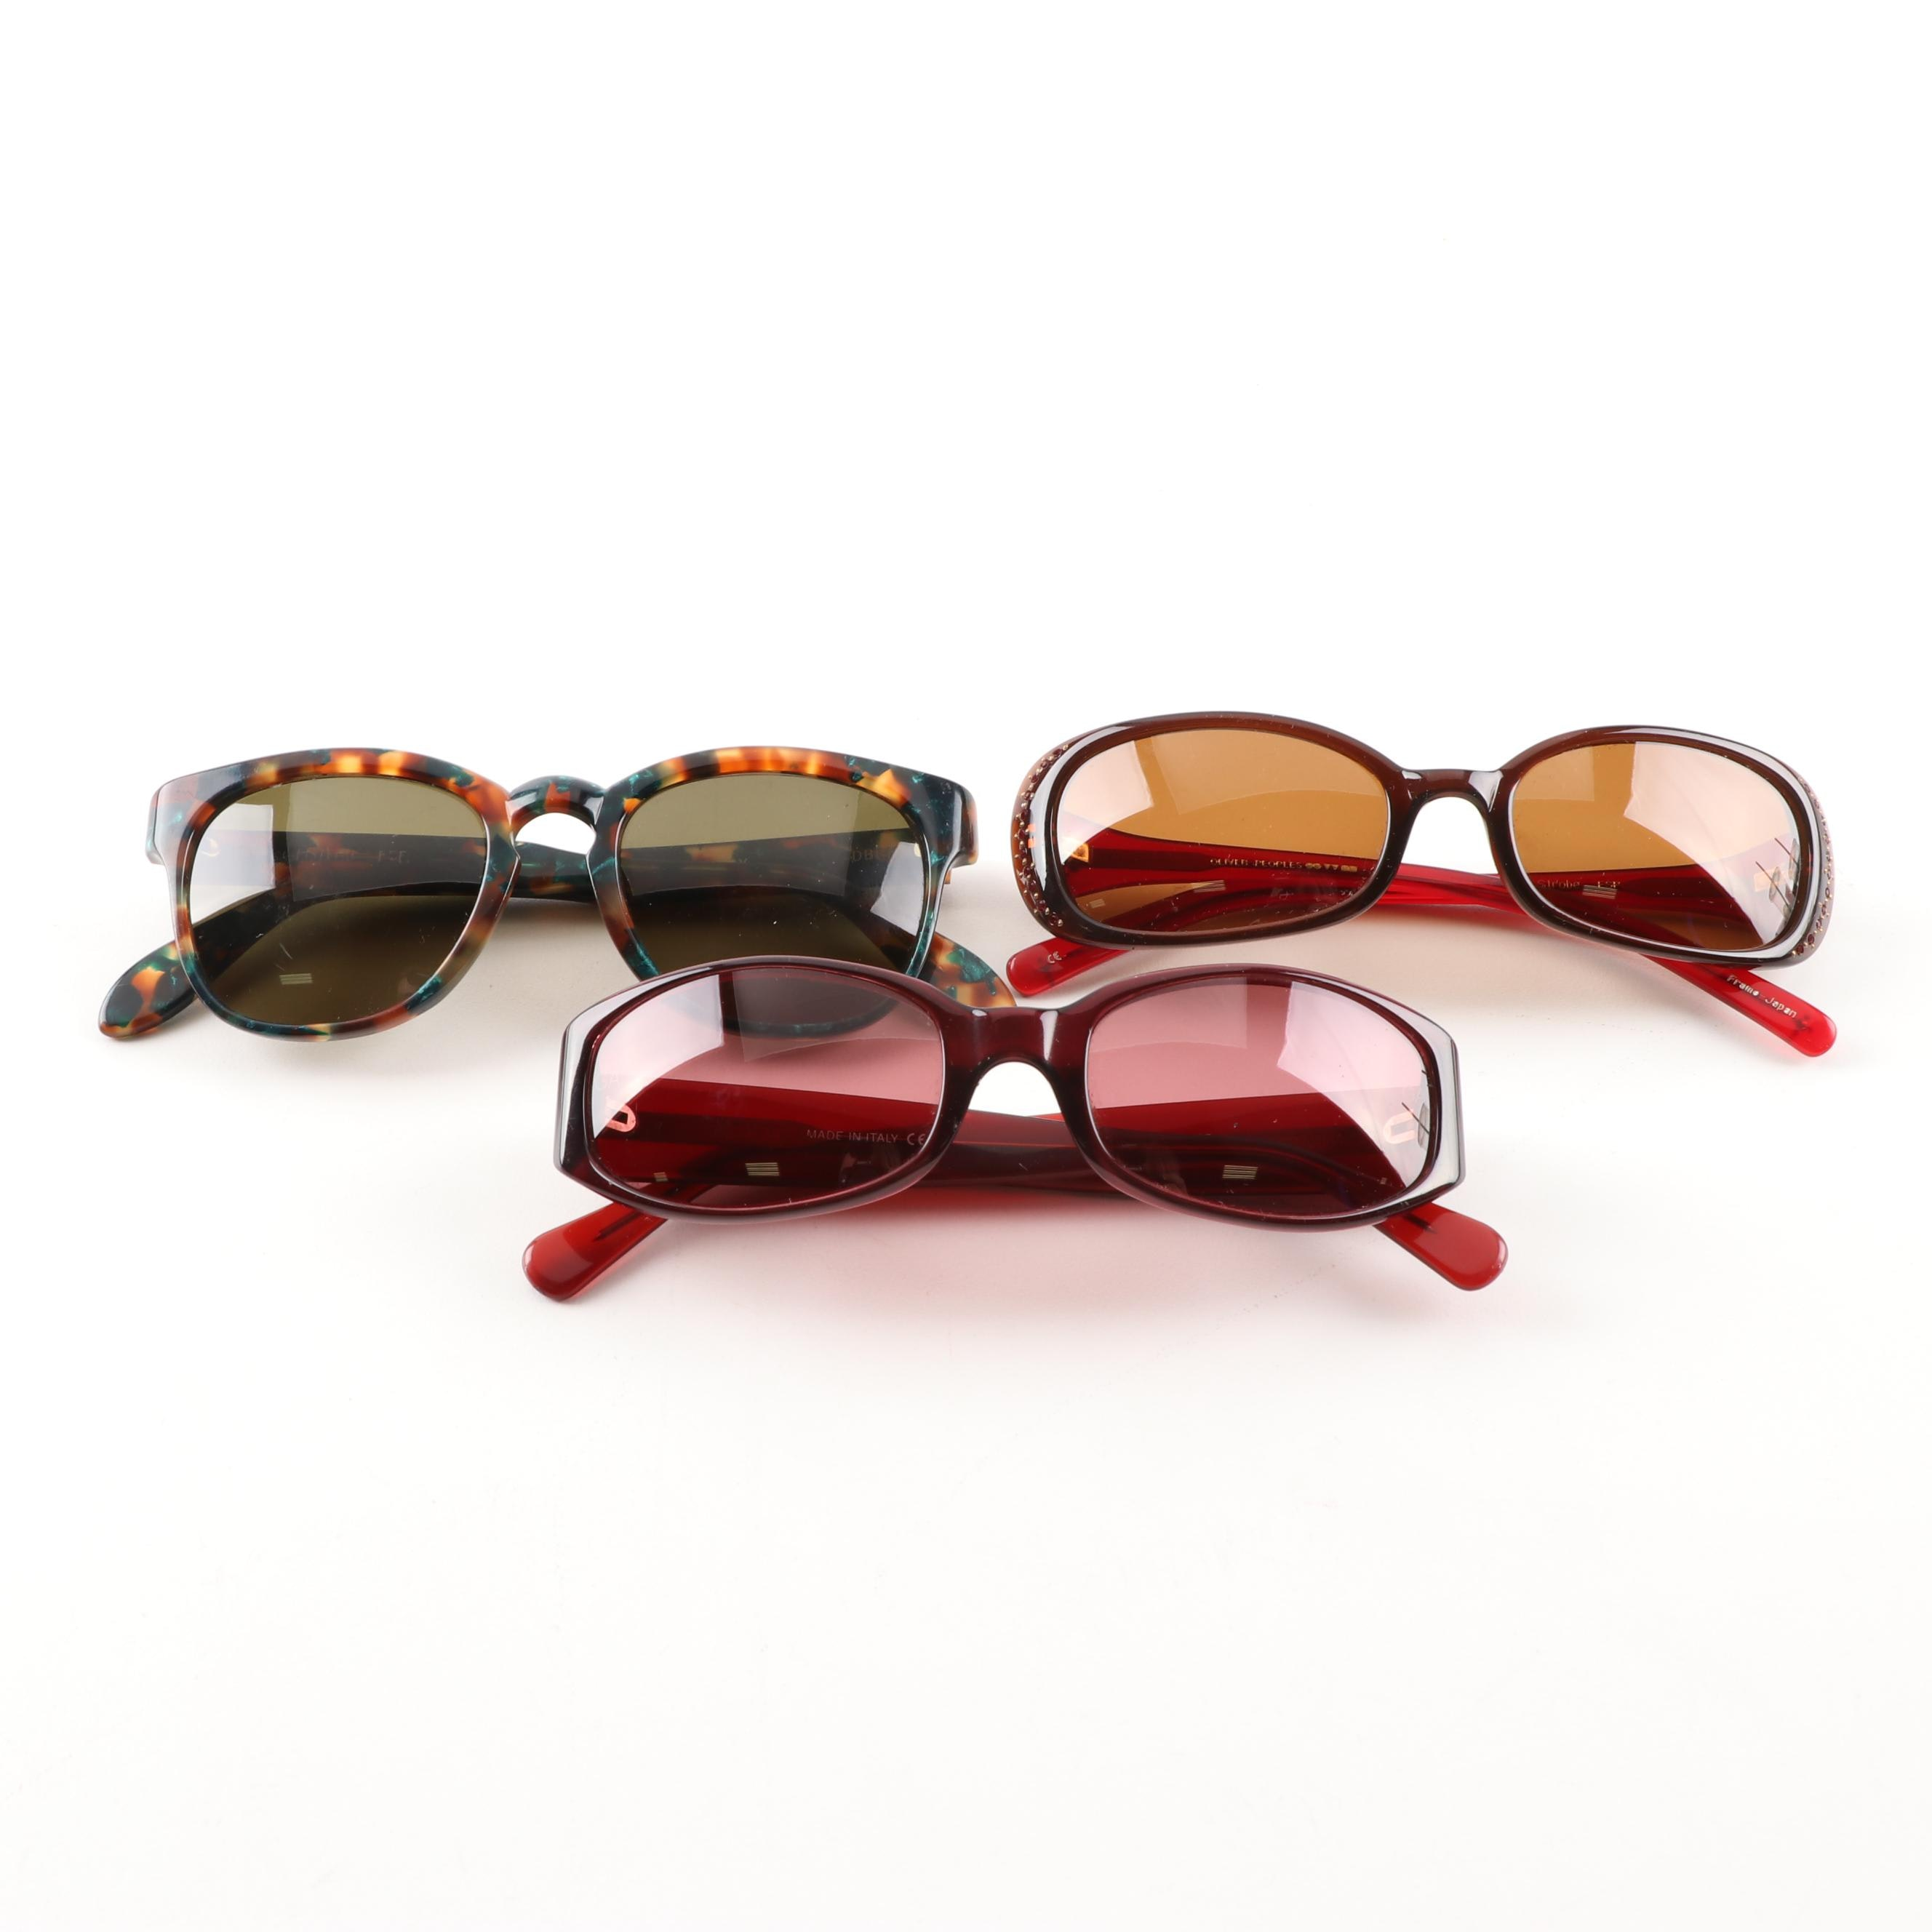 Women's Sunglasses Including Oliver Peoples